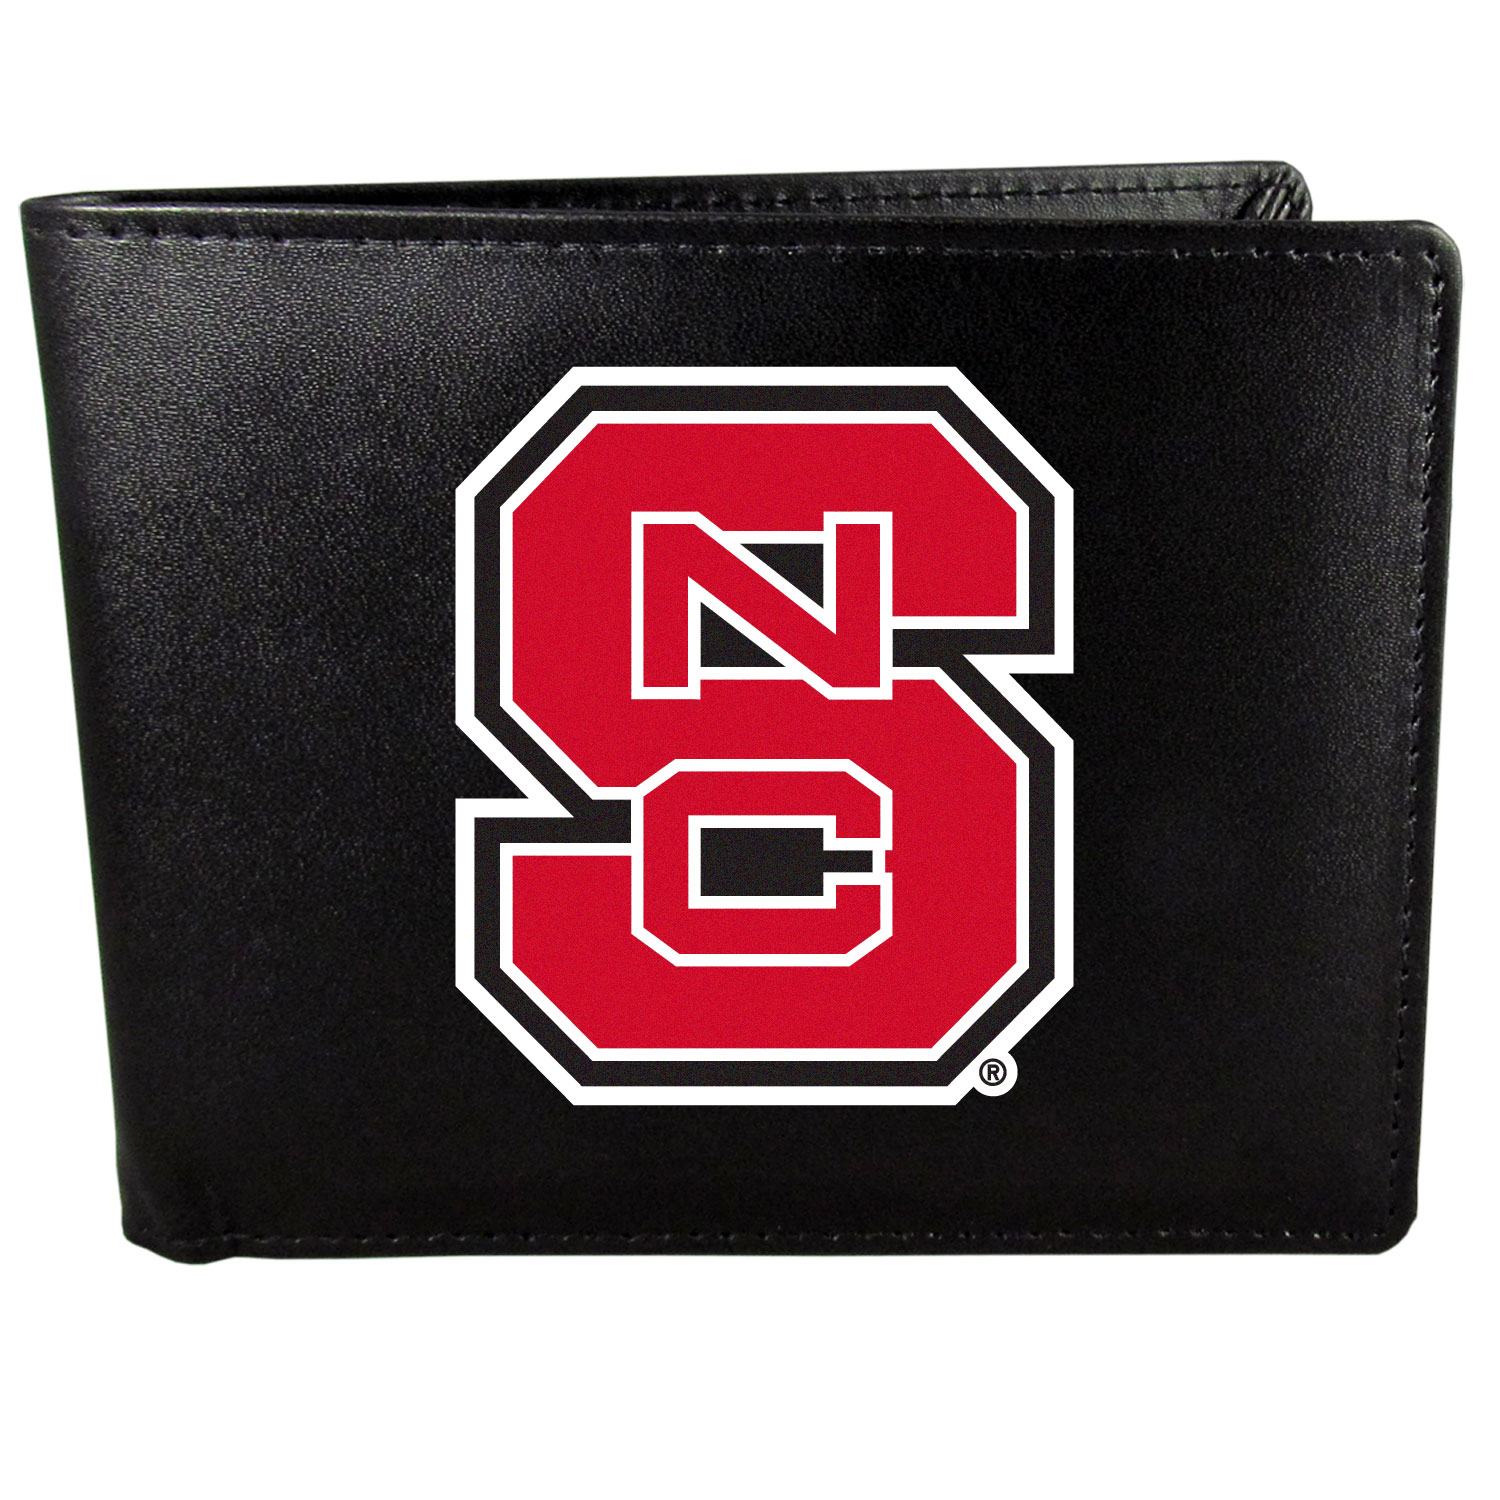 N. Carolina St. Wolfpack Leather Bi-fold Wallet, Large Logo - Our classic fine leather bi-fold wallet is meticulously crafted with genuine leather that will age beautifully so you will have a quality wallet for years to come. The wallet opens to a large, billfold pocket and numerous credit card slots and has a convenient windowed ID slot. The front of the wallet features an extra large N. Carolina St. Wolfpack printed logo.